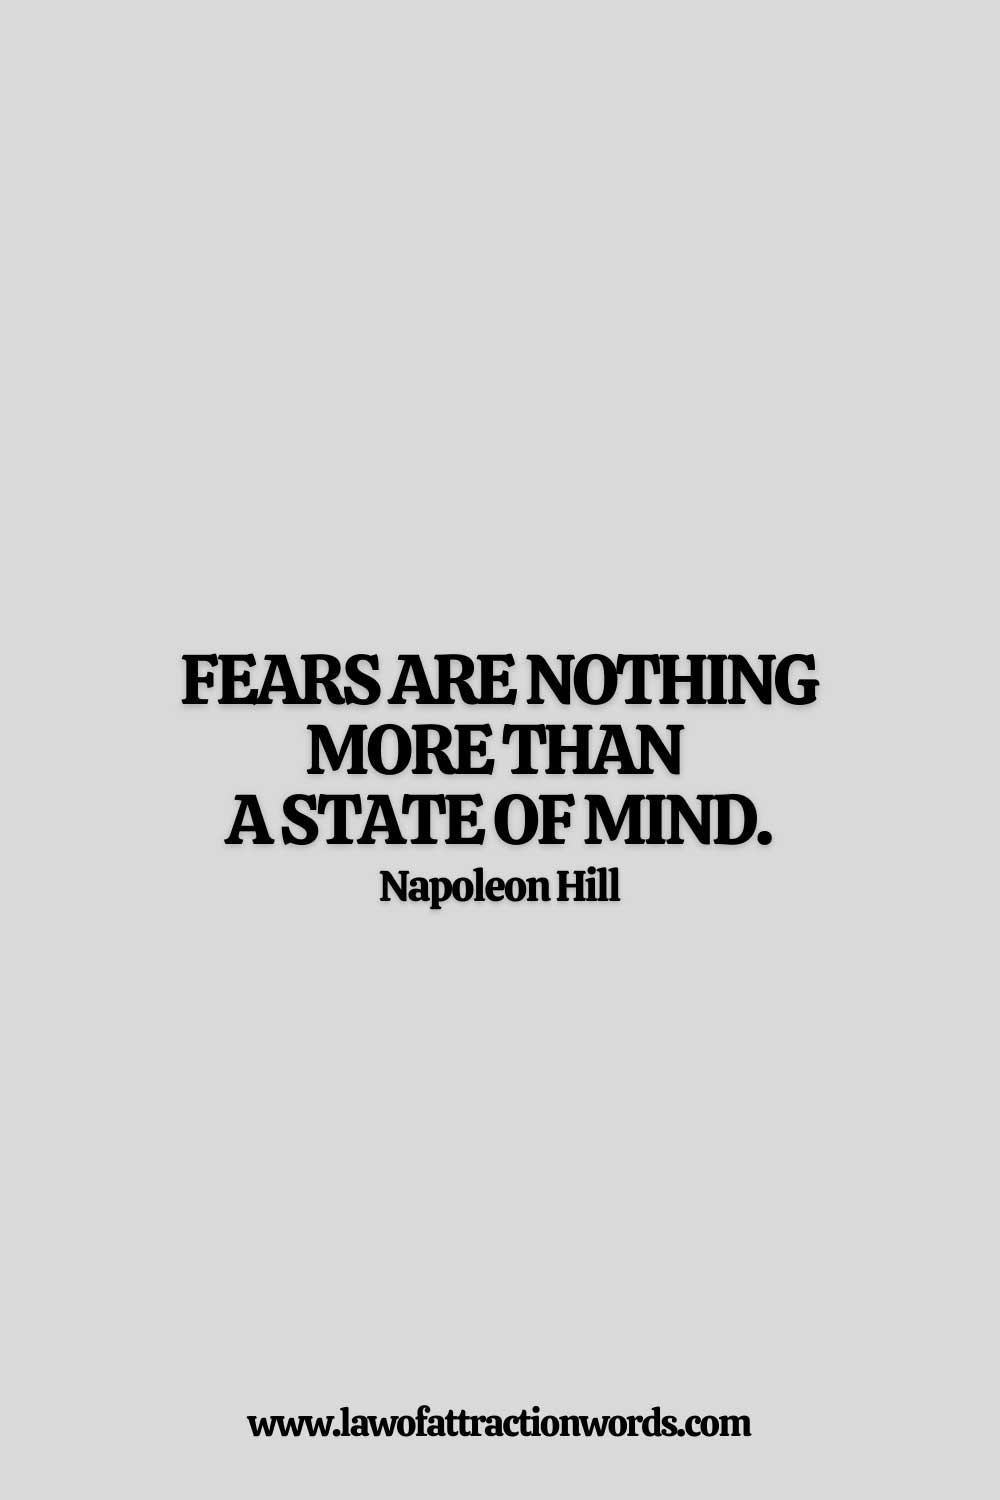 Short Quotes To Overcome Fear and Anxiety